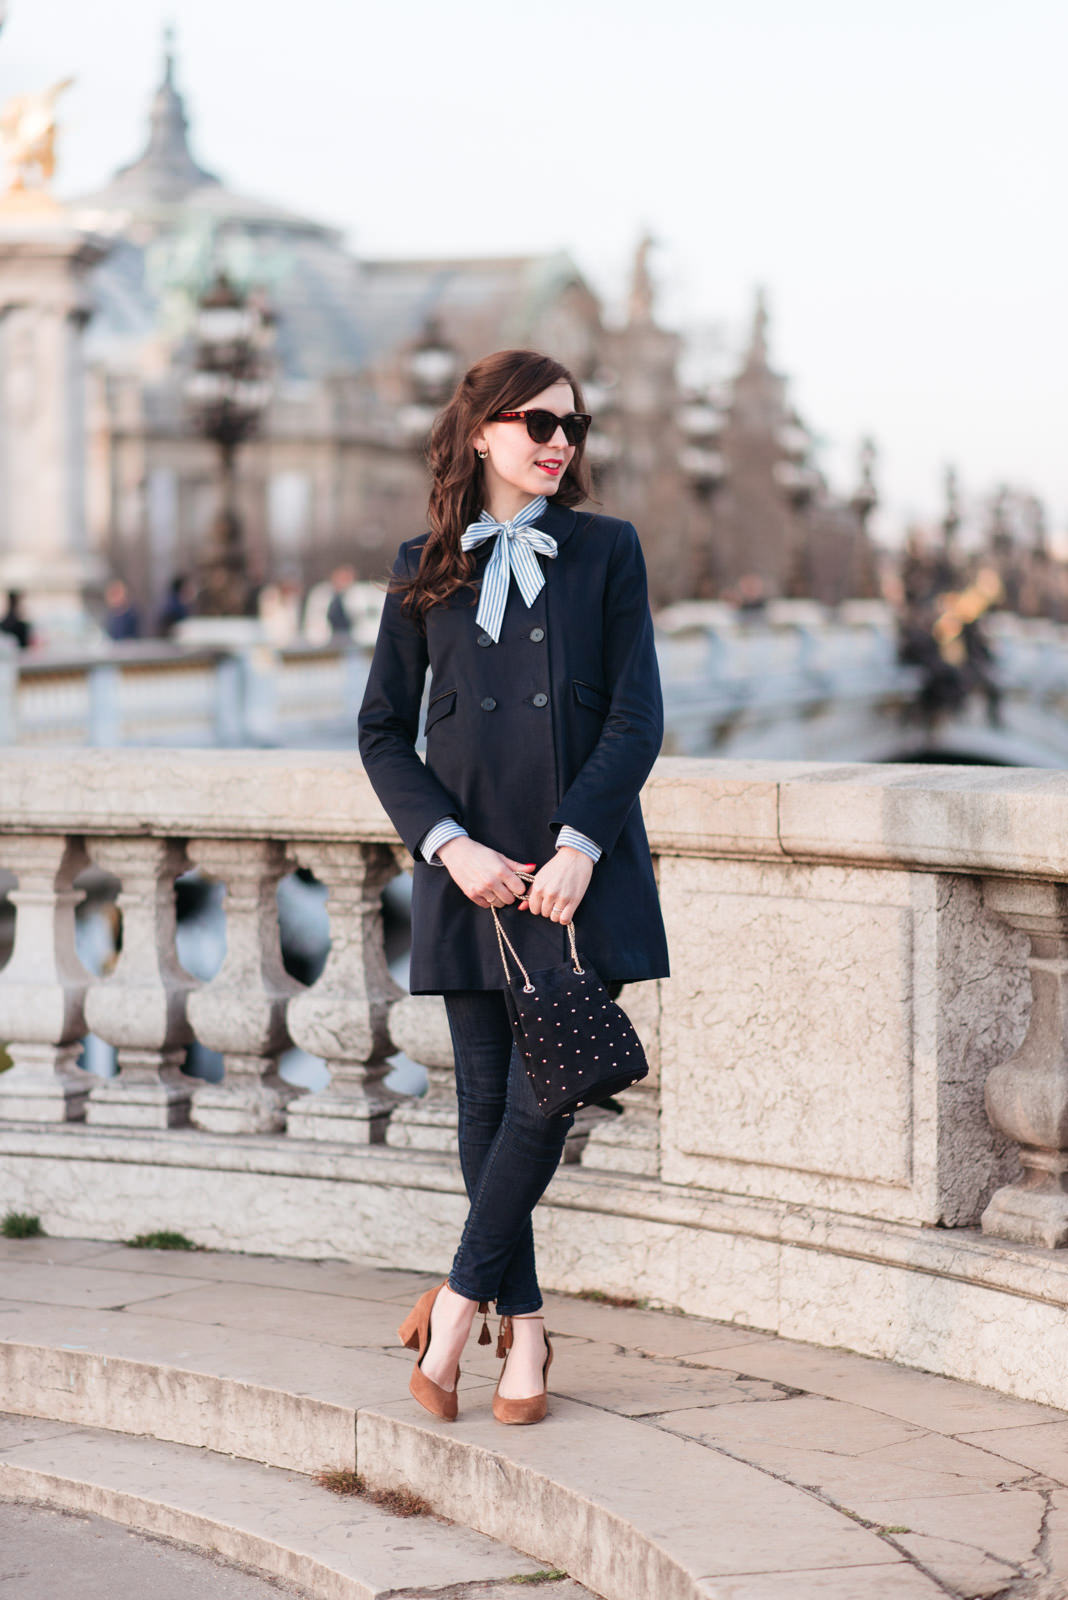 Blog-Mode-And-The-City-Looks-En-Sezane-Sur-Le-Pont-Alexandre-III-12